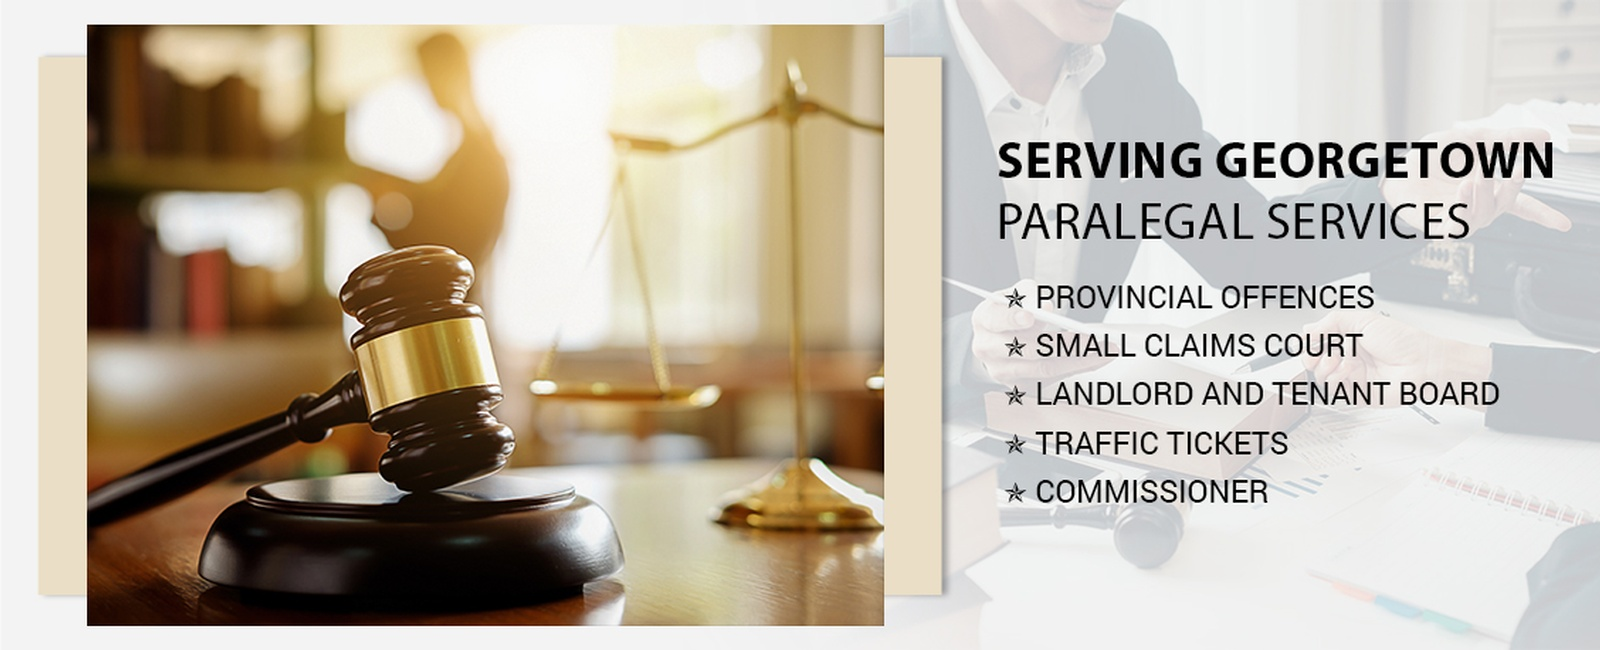 Paralegal services in Georgetown